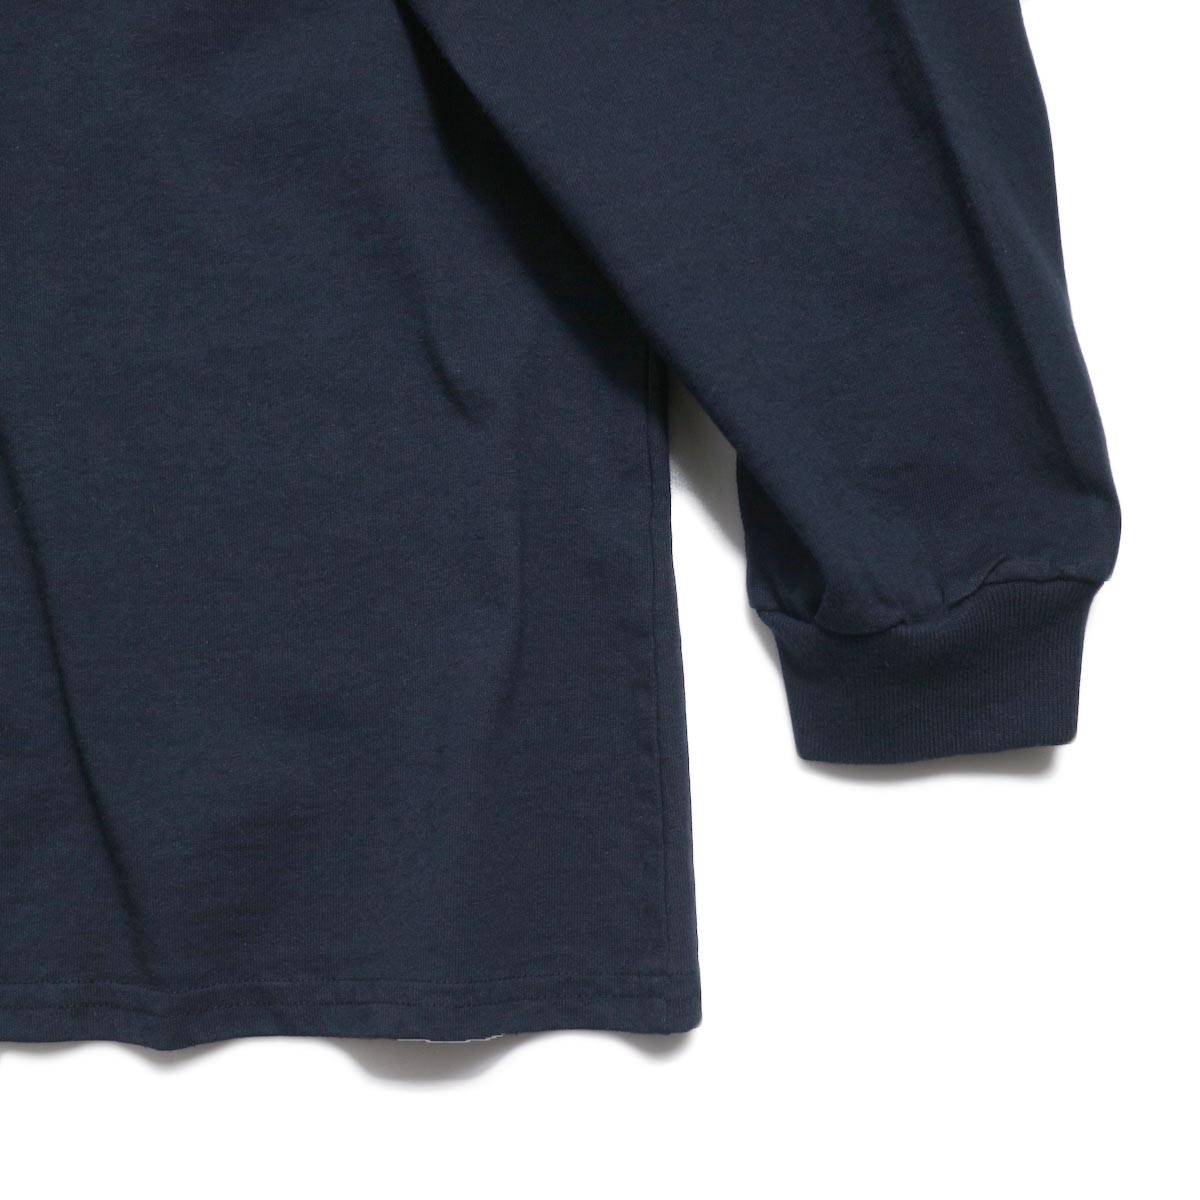 UNIVERSAL PRODUCTS / Heavy Weight L/S T-Shirt -Navy 裾、袖